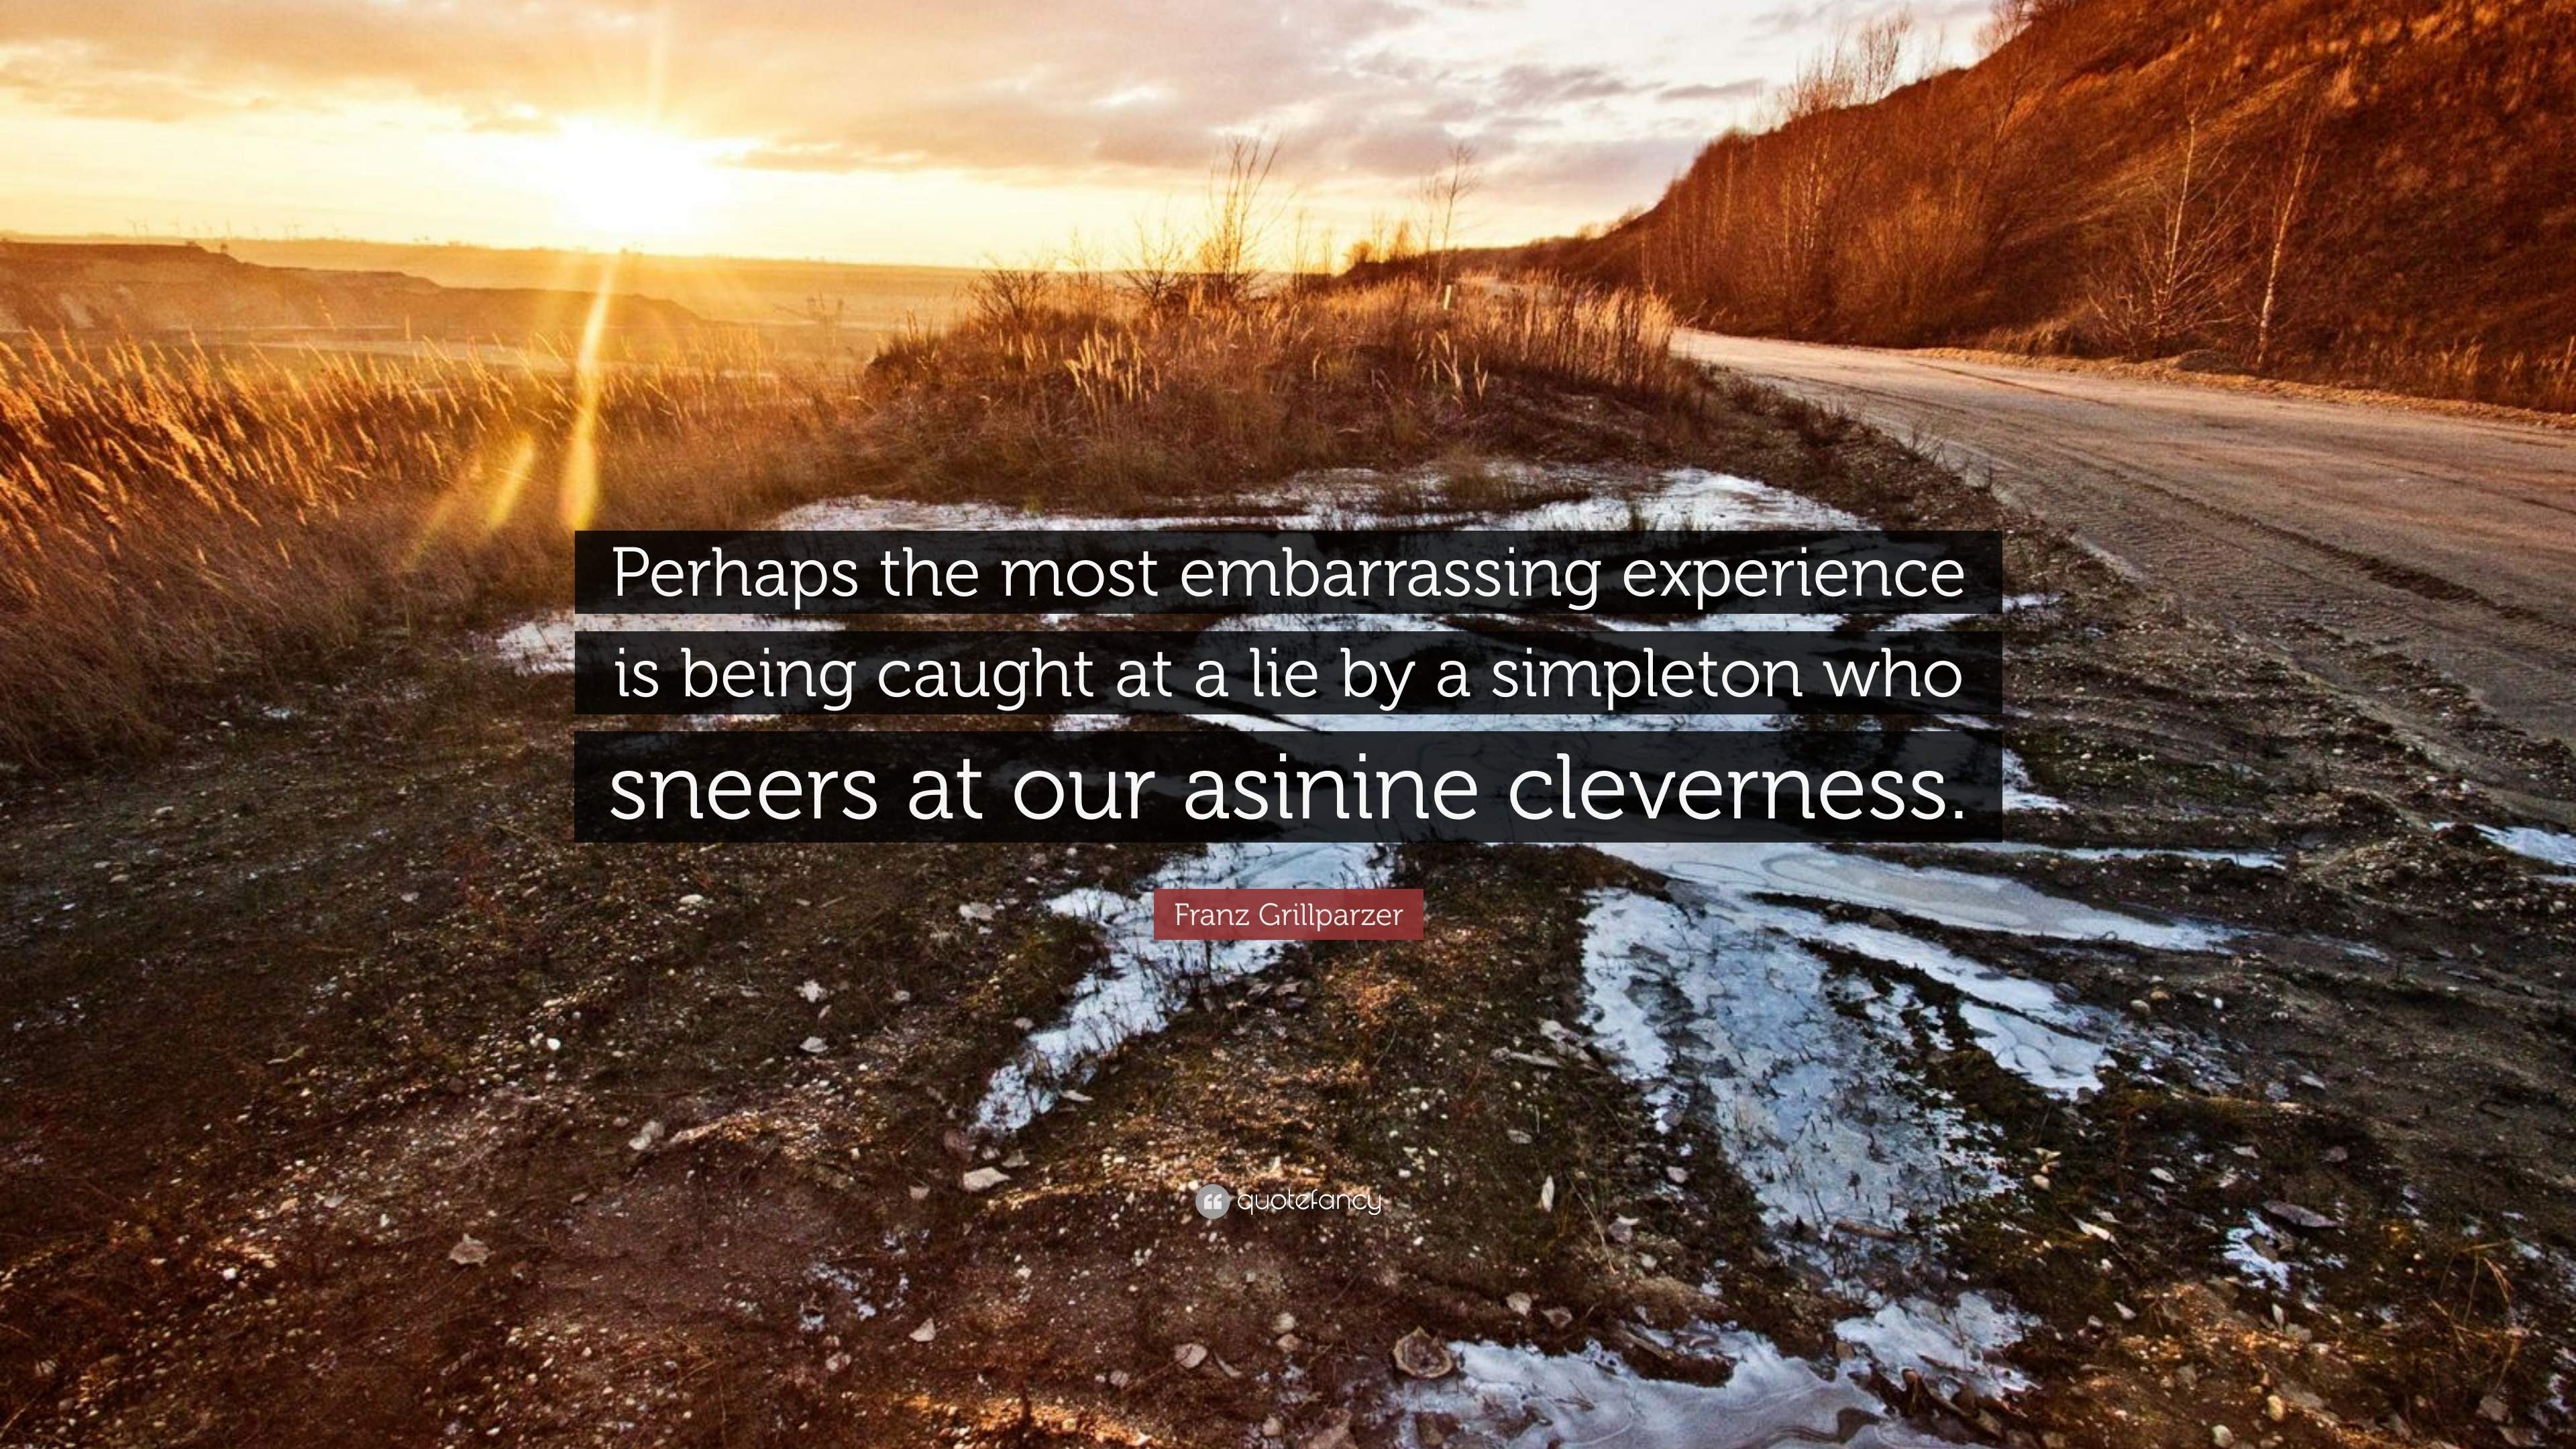 most embarrassing experience